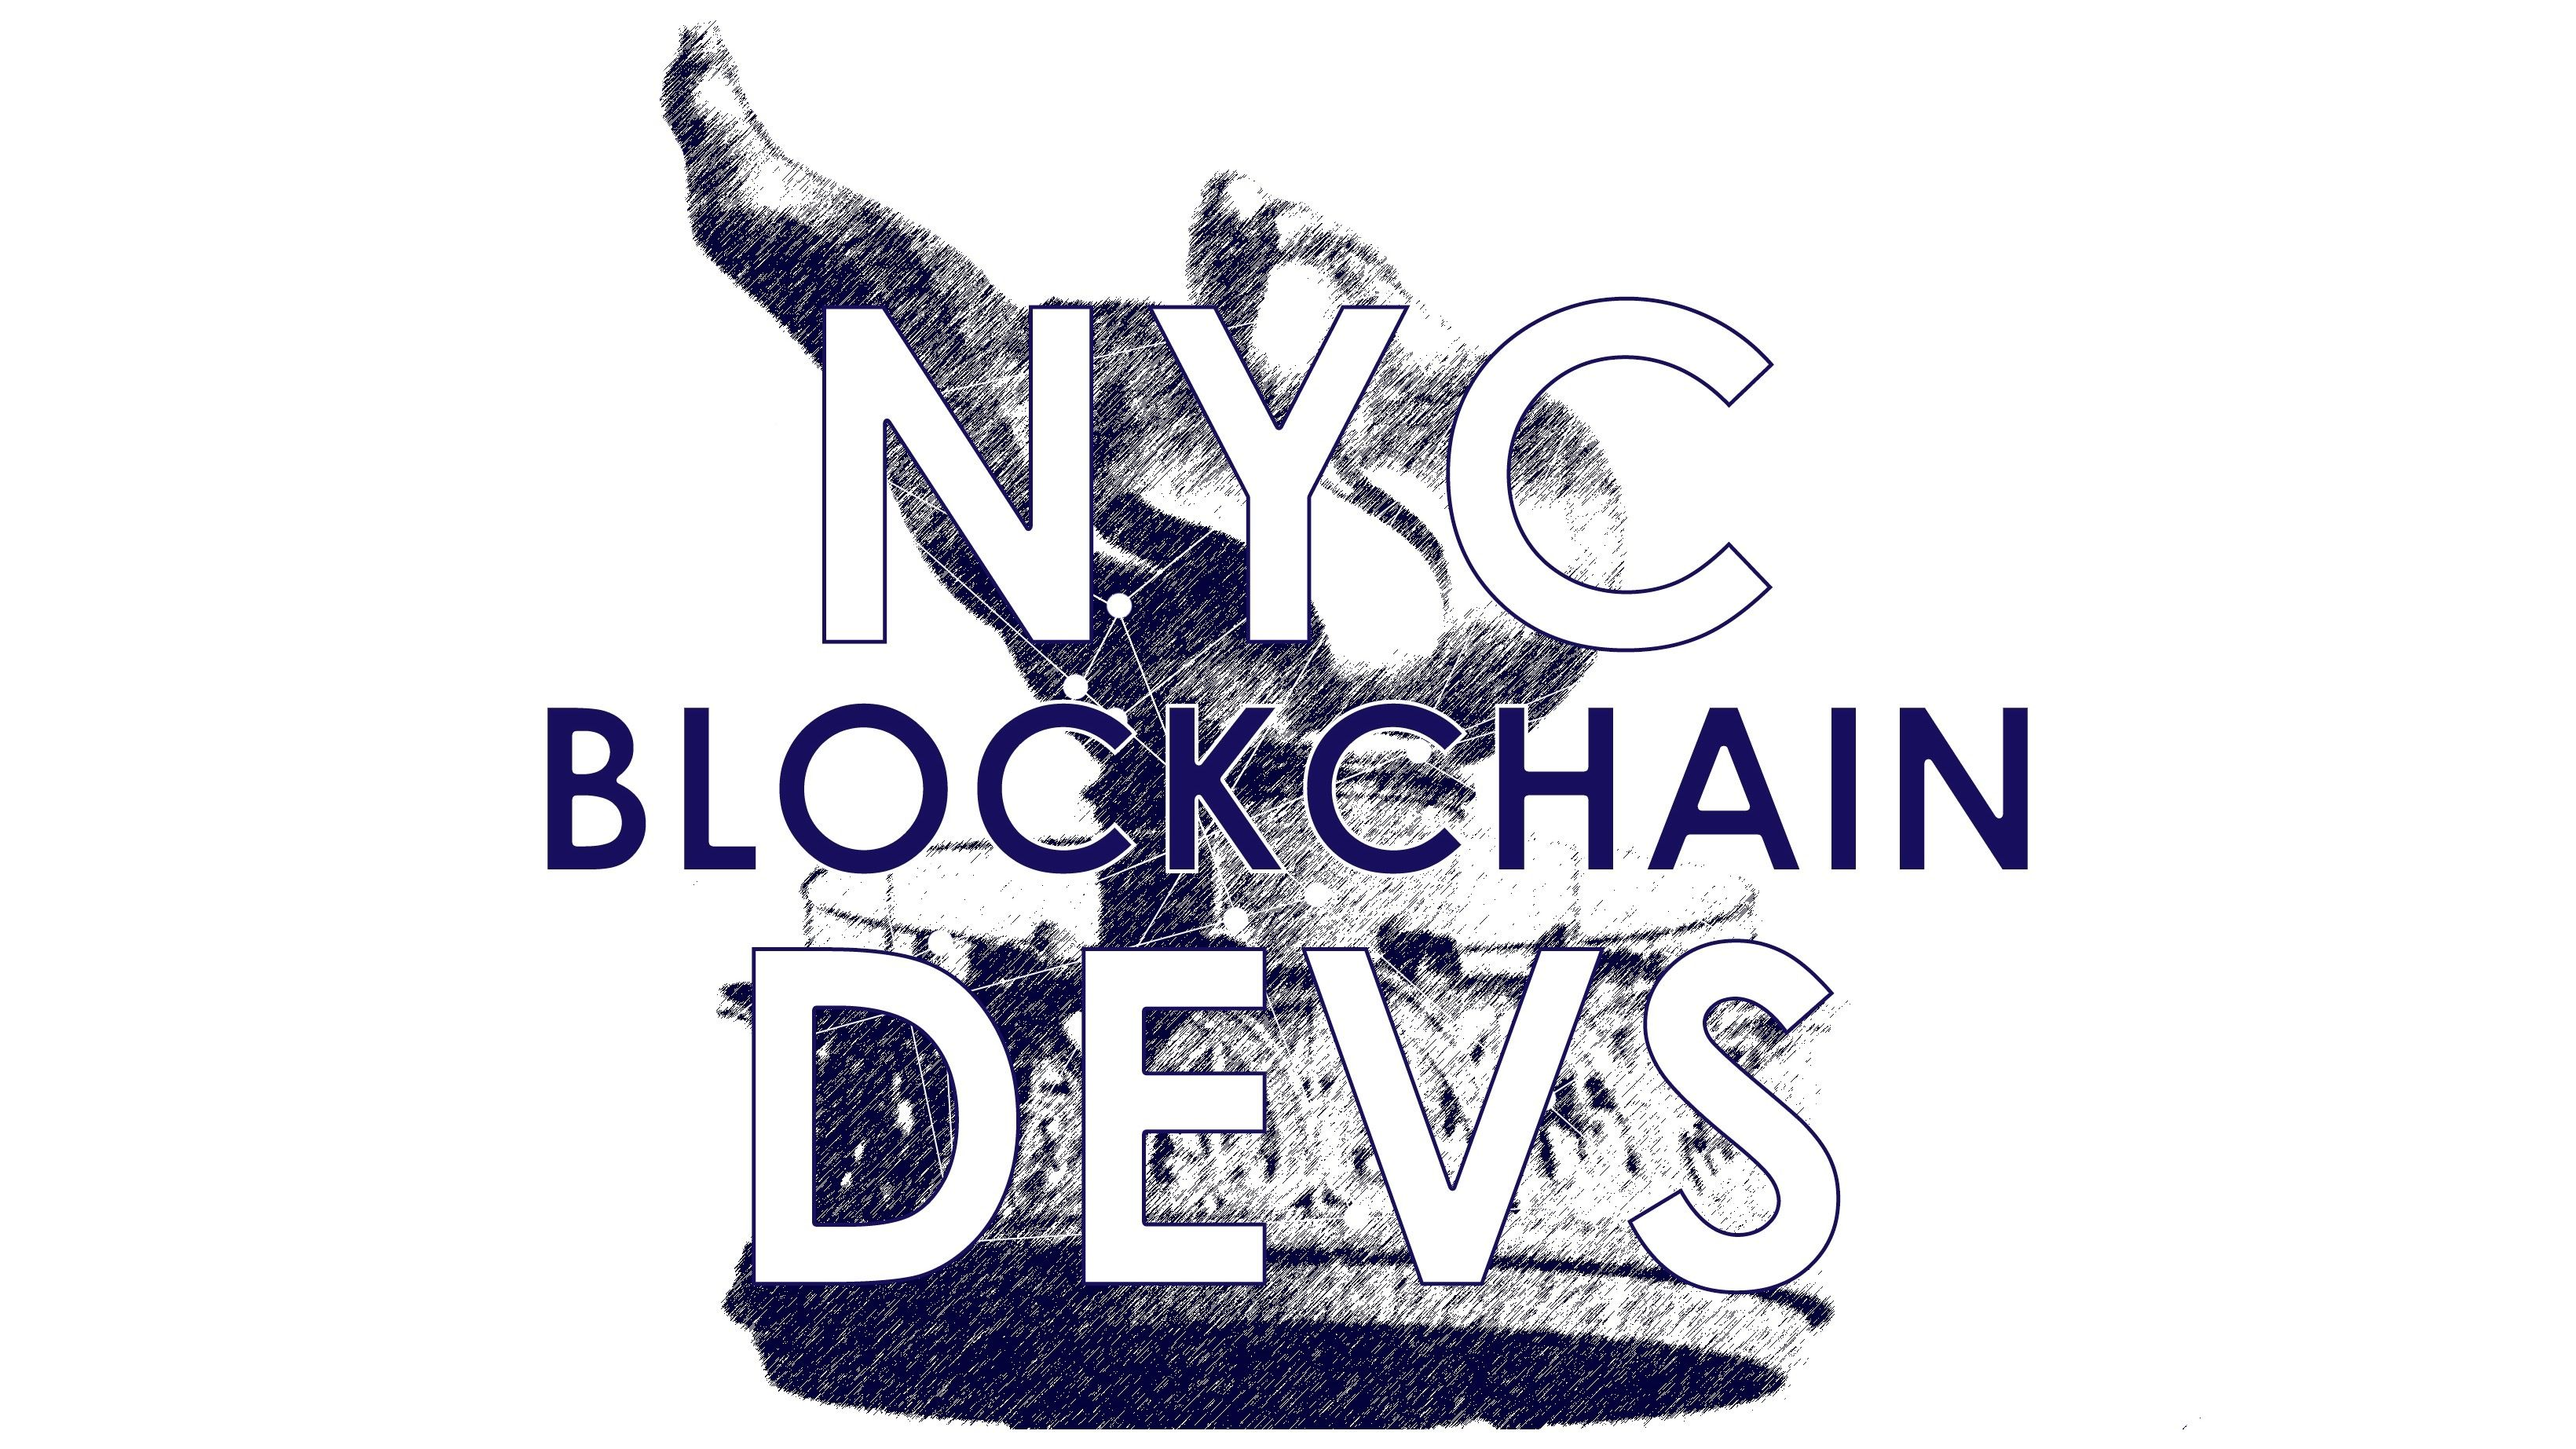 NYC Blockchain Devs